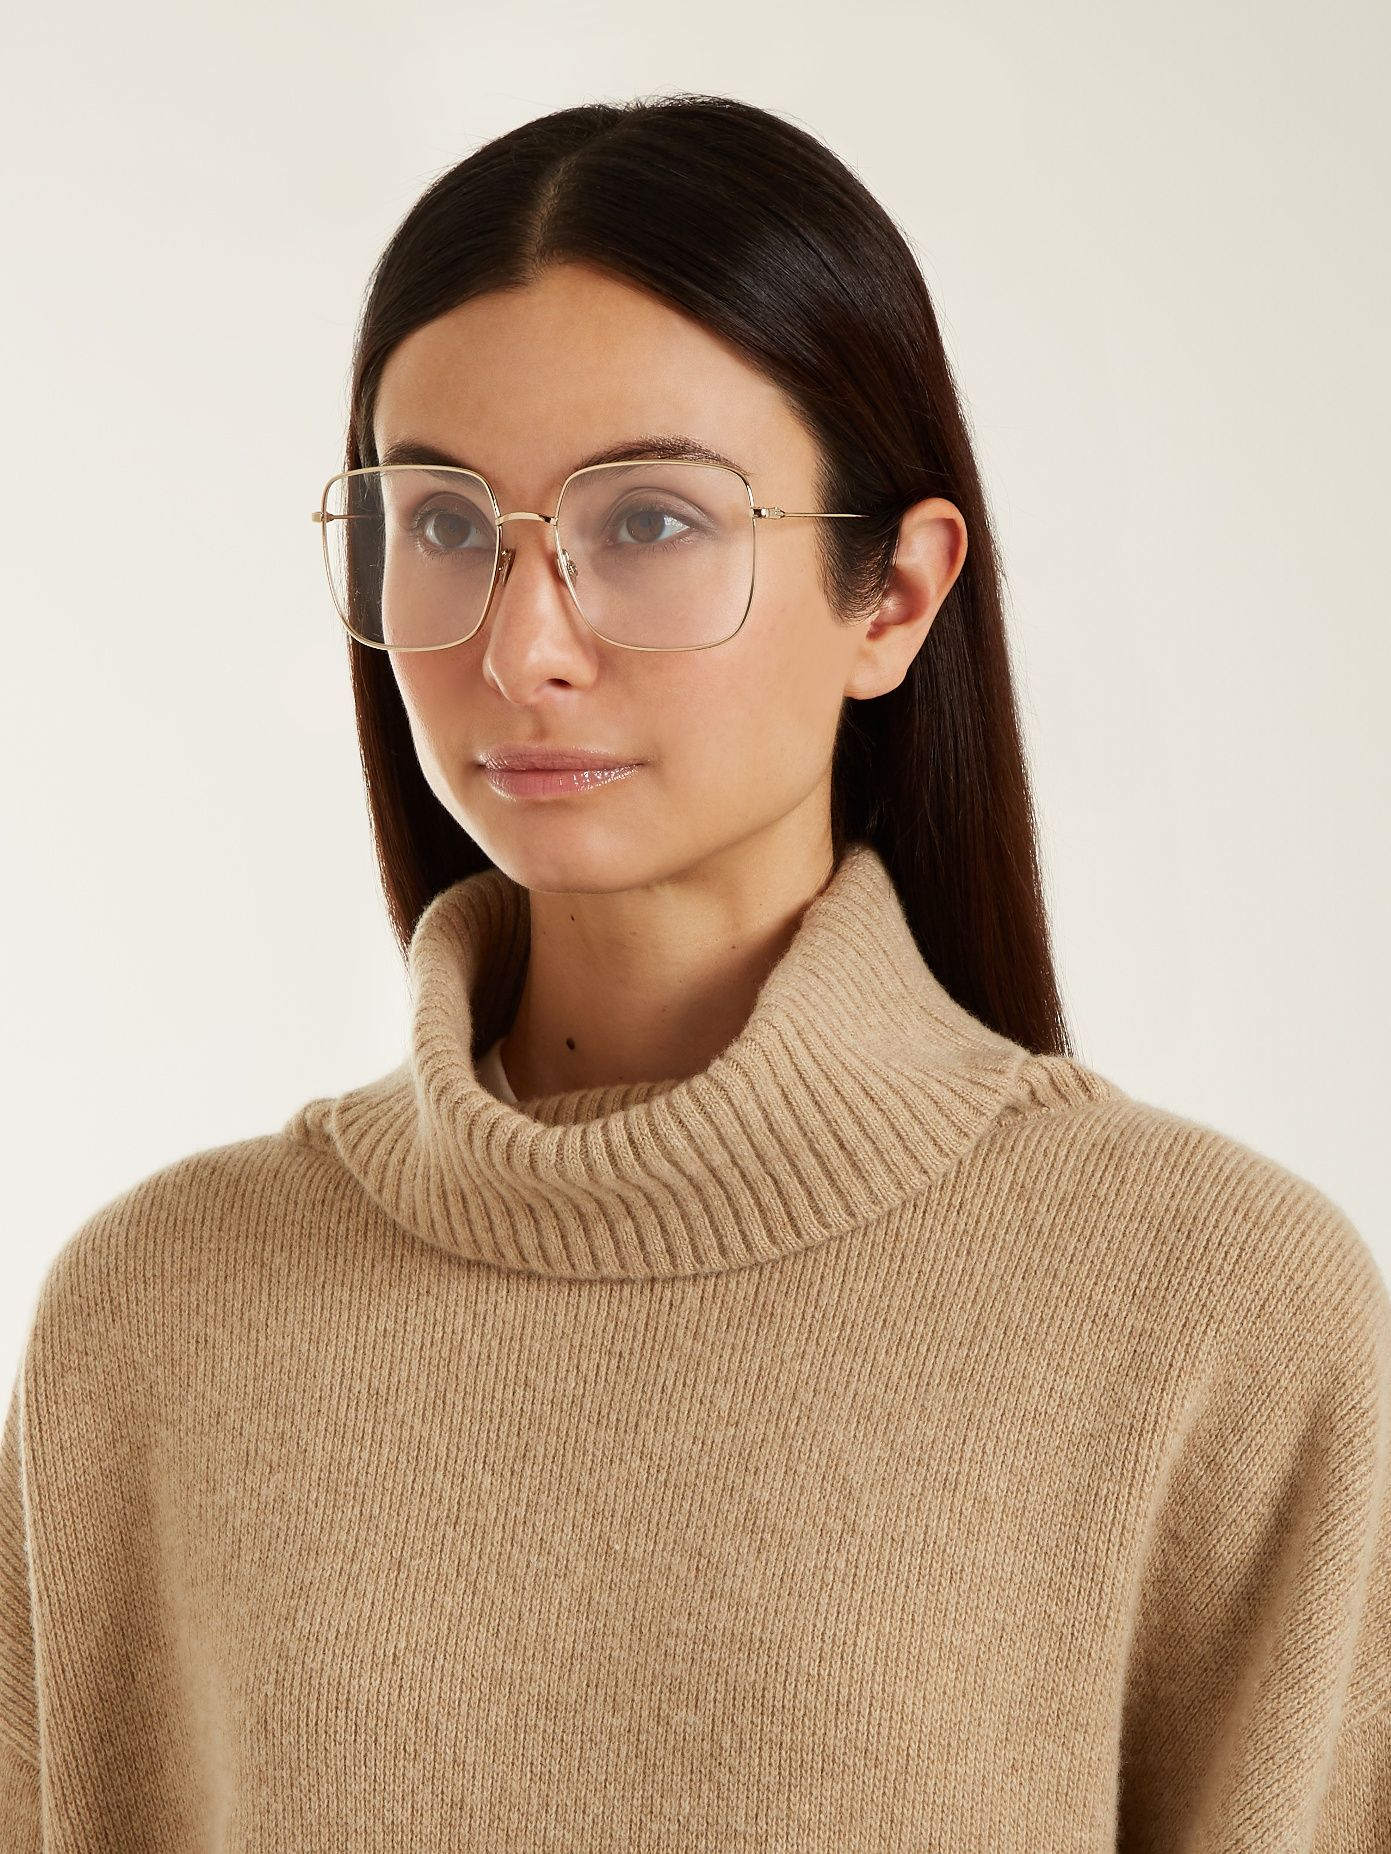 691edf4b4c Stellaire01 square-frame glasses